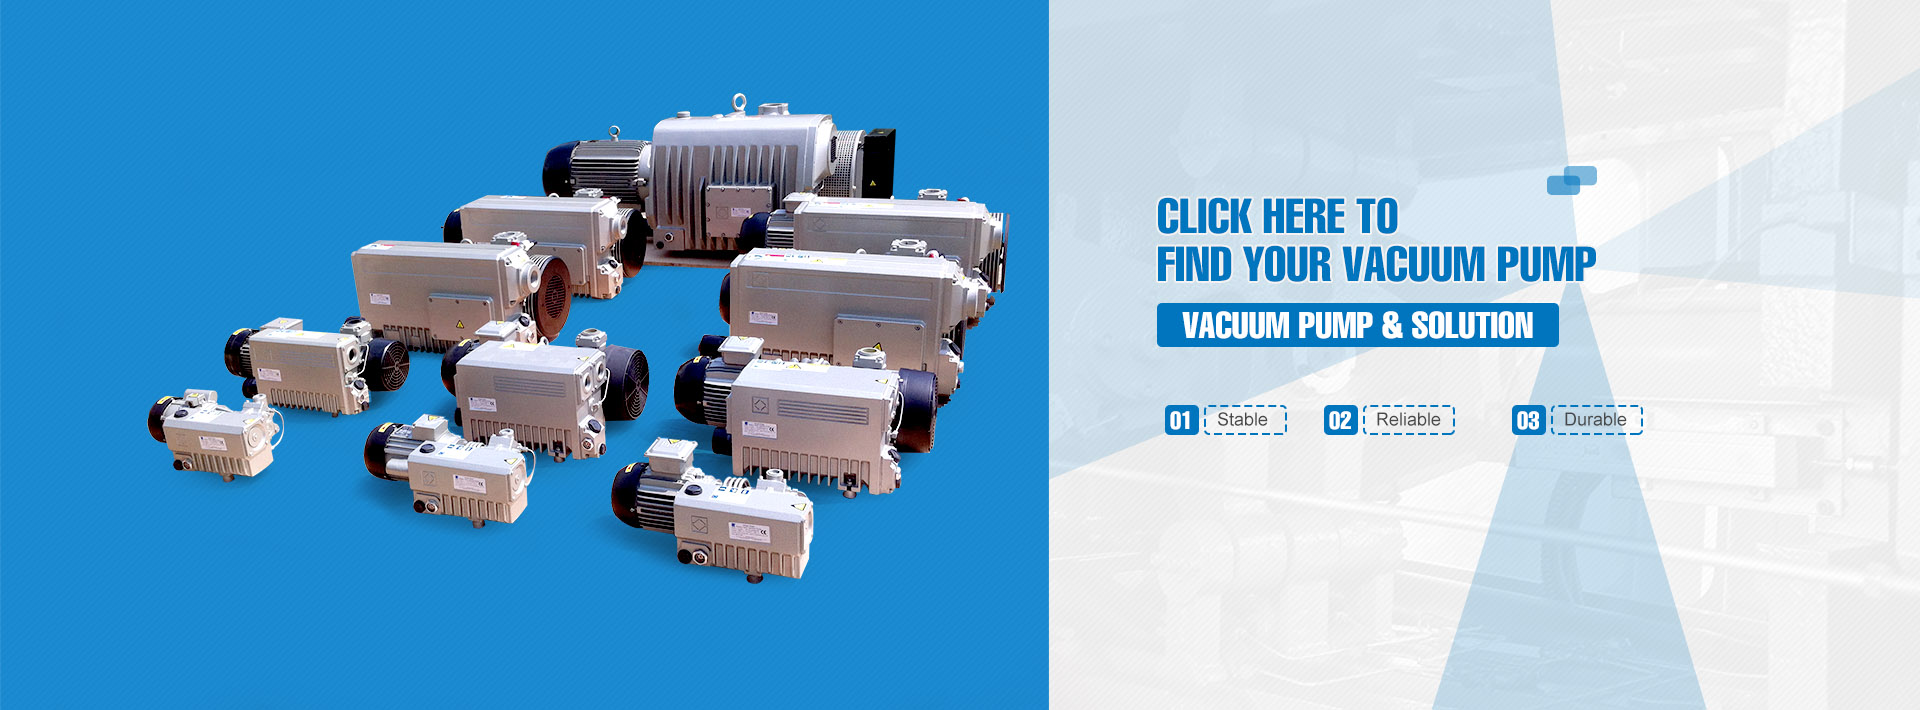 Vacuum Pump & Solution